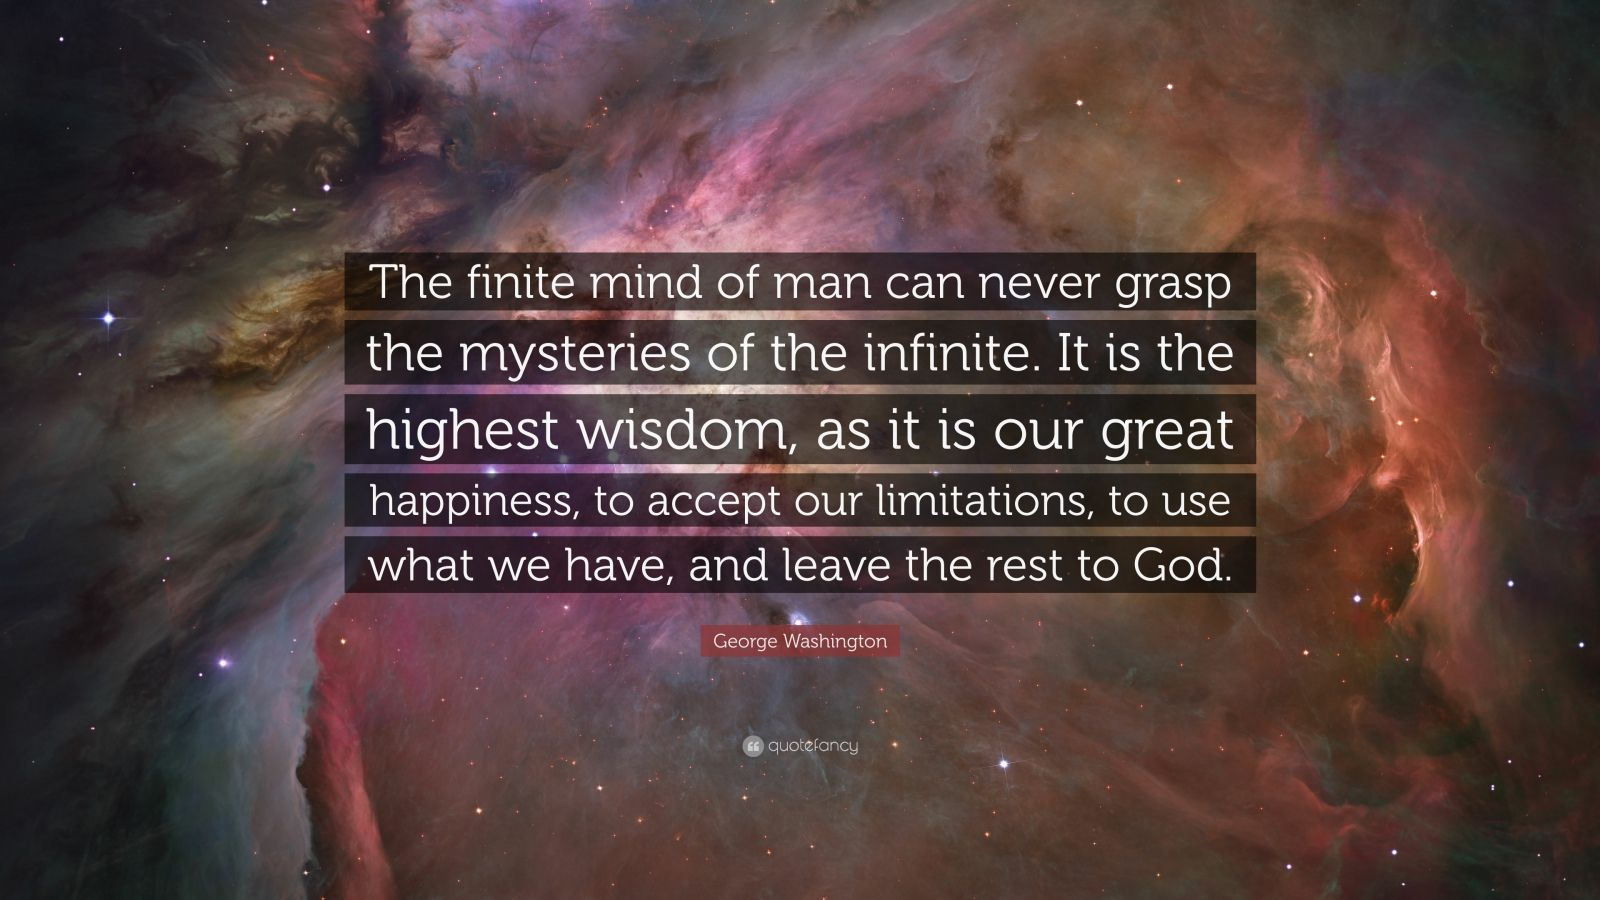 """George Washington Quote: """"The finite mind of man can never grasp the mysteries of the infinite. It is the highest wisdom, as it is our great happiness, to accept our limitations, to use what we have, and leave the rest to God."""""""